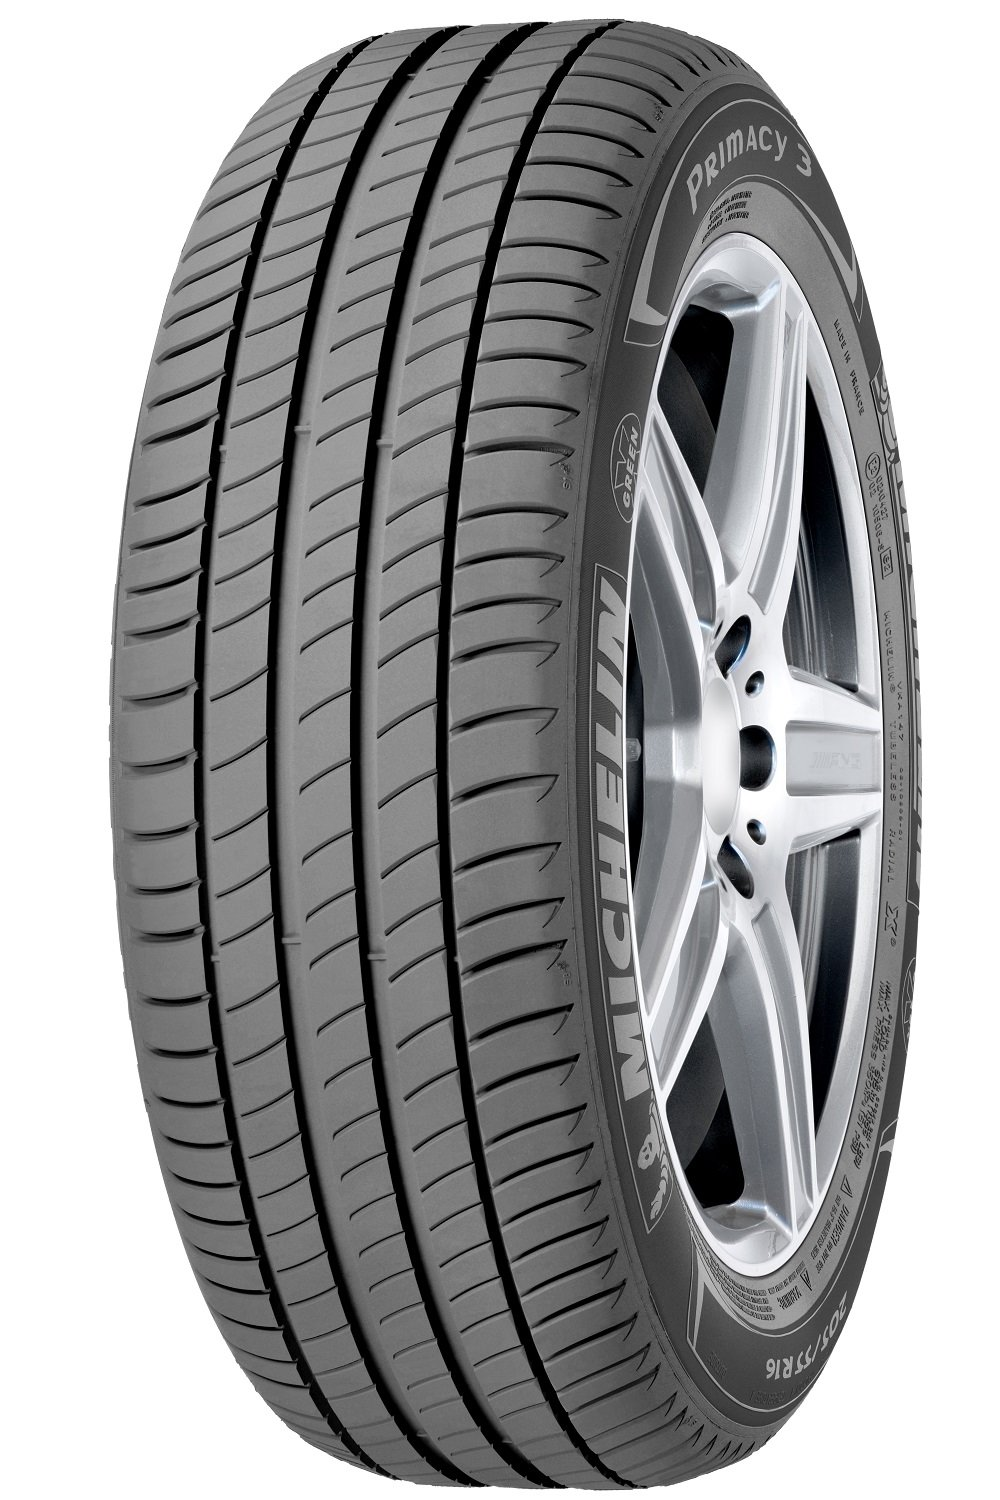 MICHELIN PRIMACY 3 225/50R16